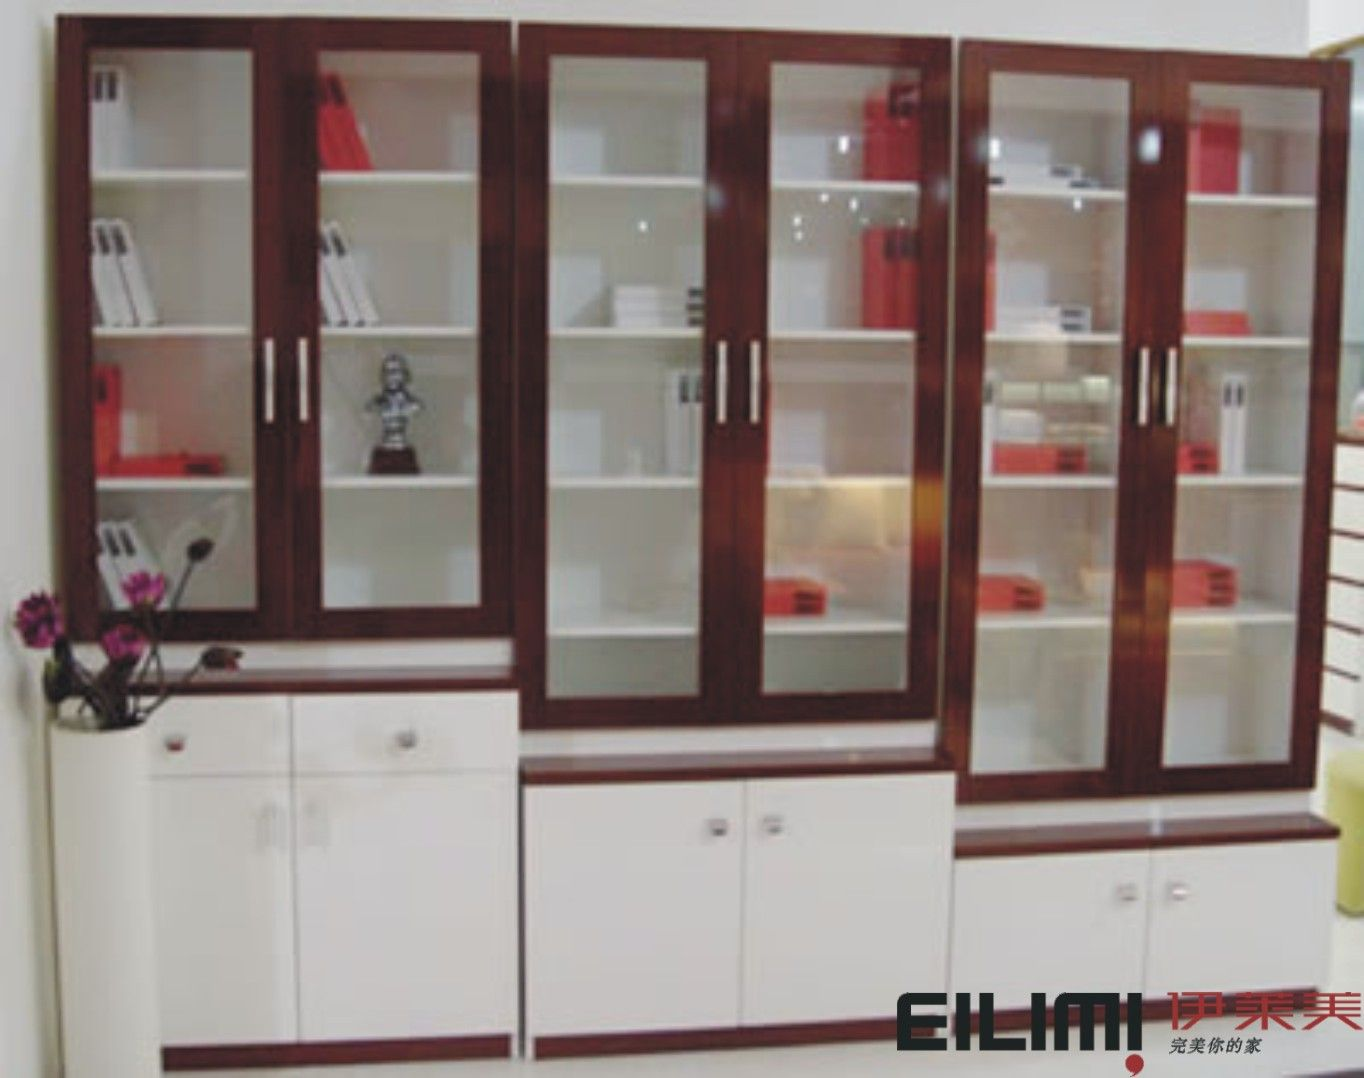 Living room cabinets gryslille living room cabinetry Living room cupboards designs